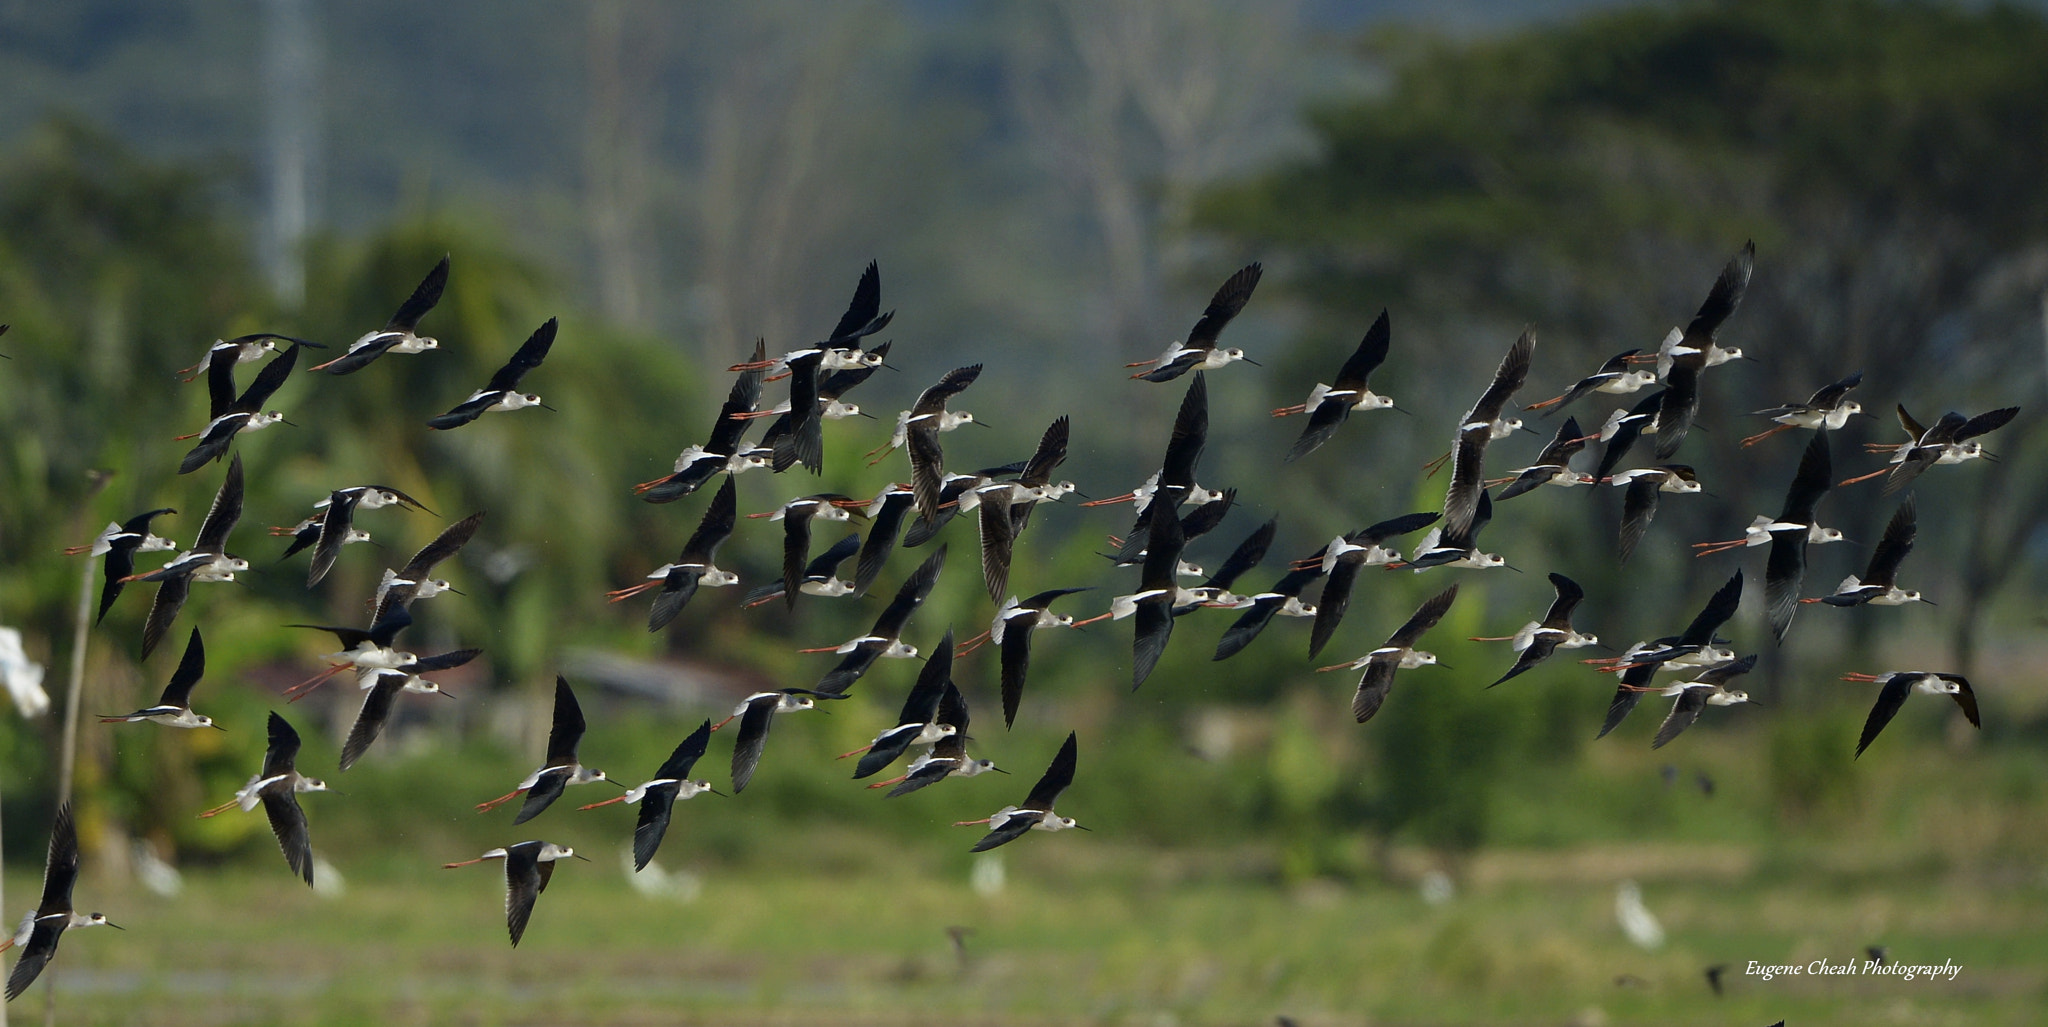 Photograph Flocks of Black-winged Stilt by Eugene Cheah on 500px